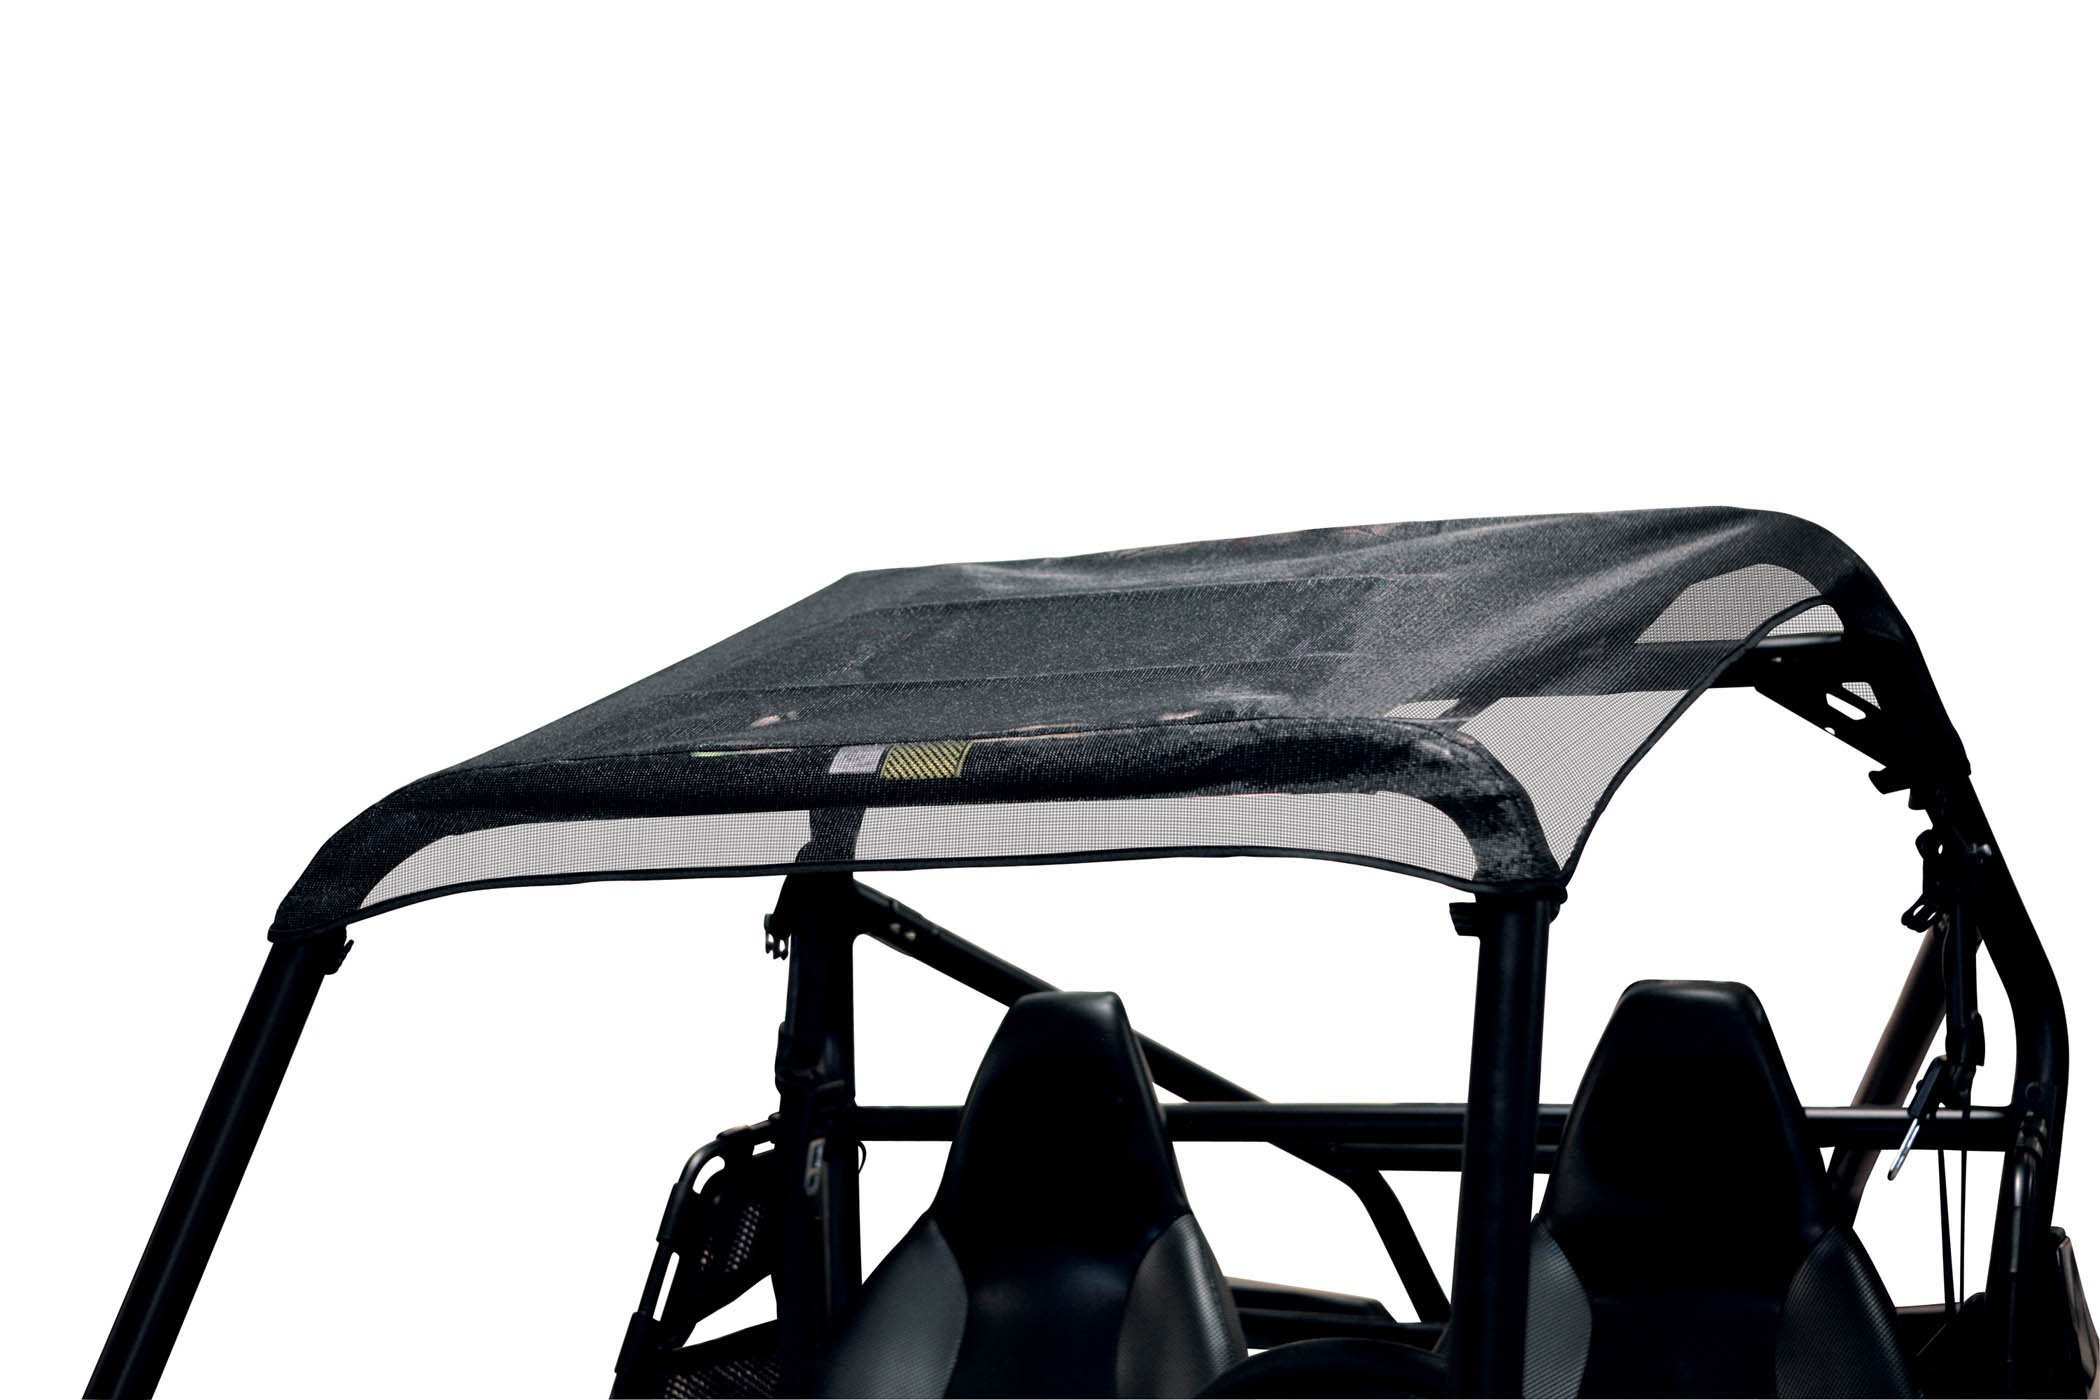 Classic Accessories 18-050-010401-00 Quadgear Extreme Black UTV Mesh Roll Cage Top for RZR by Classic Accessories